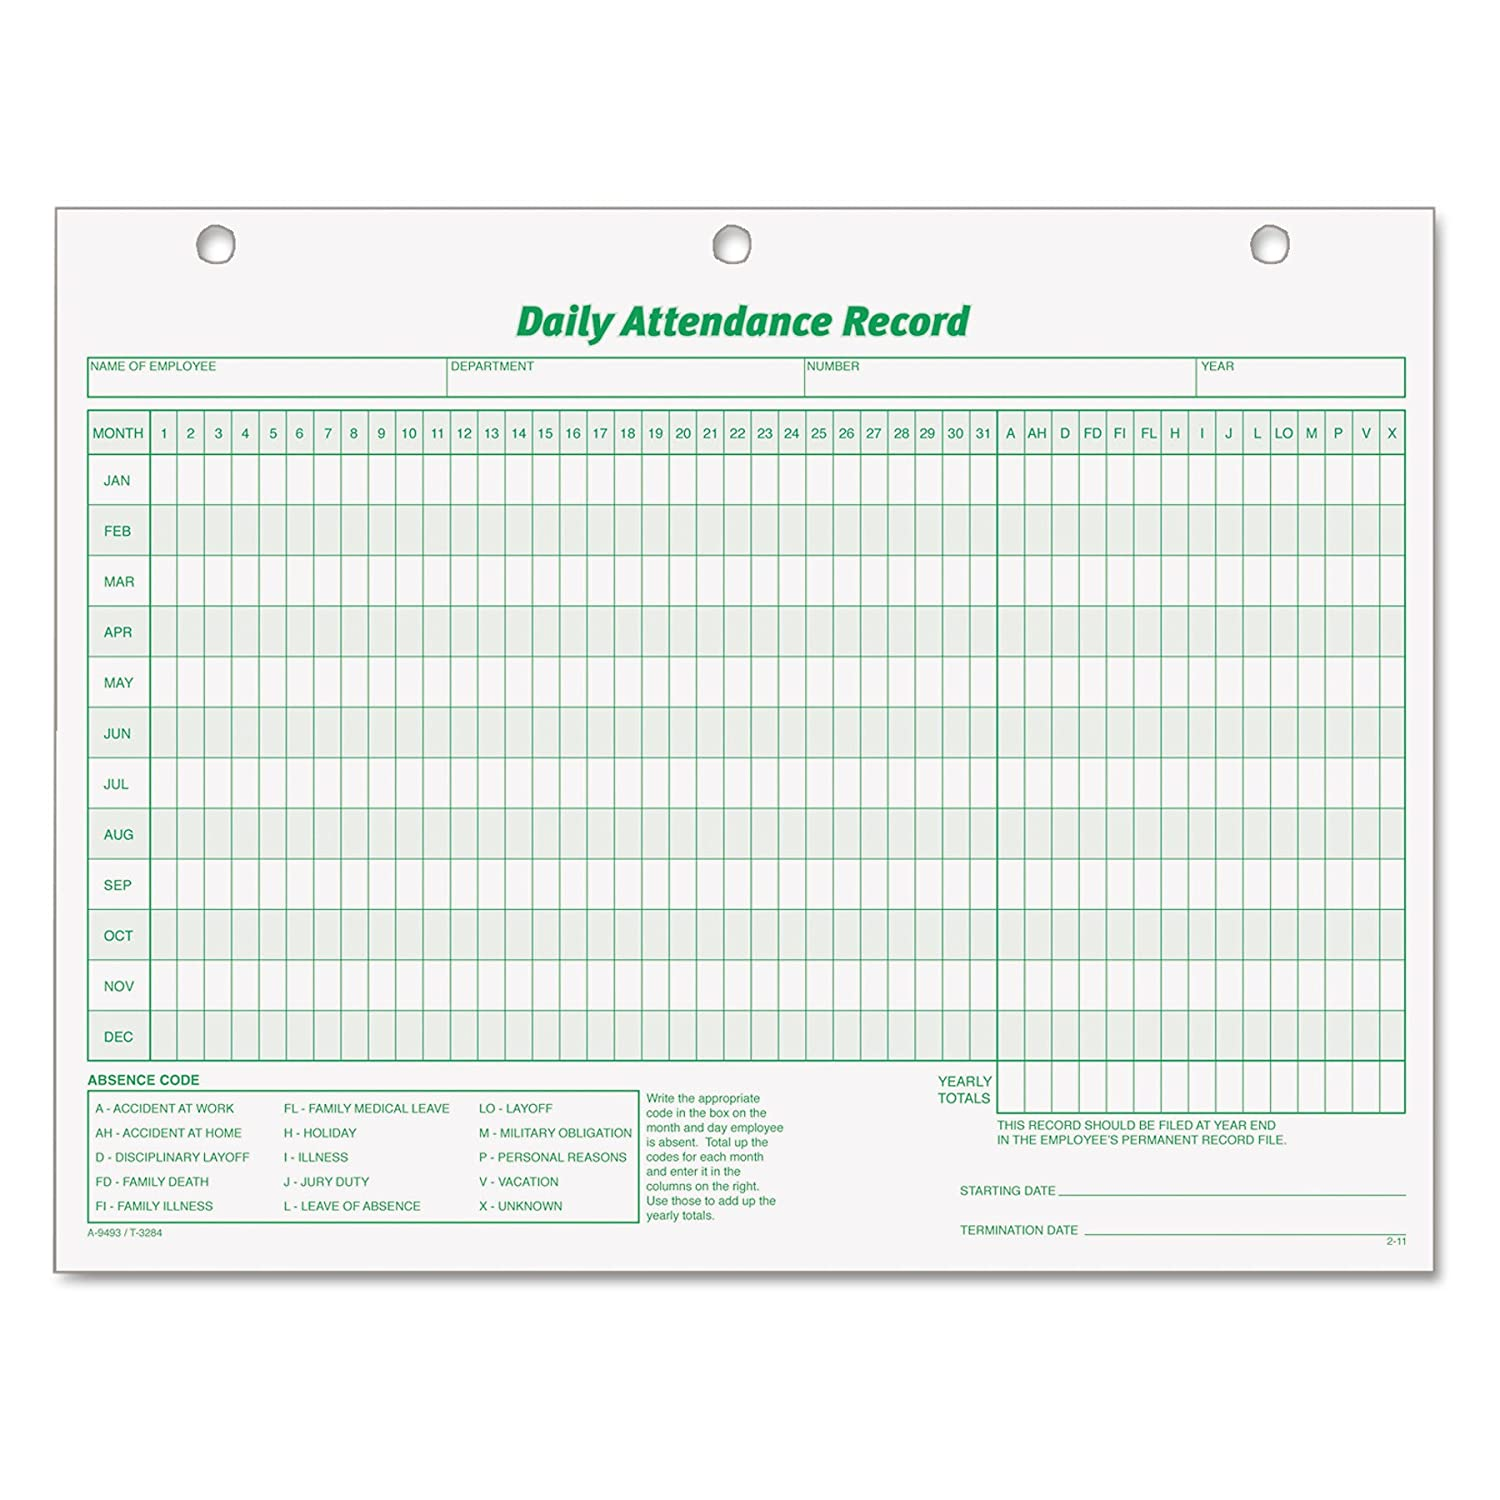 B00008XPLY TOPS 3284 Daily Attendance Card, 8 1/2 x 11 (Pack of 50 Forms) 81QCRmZcNcL